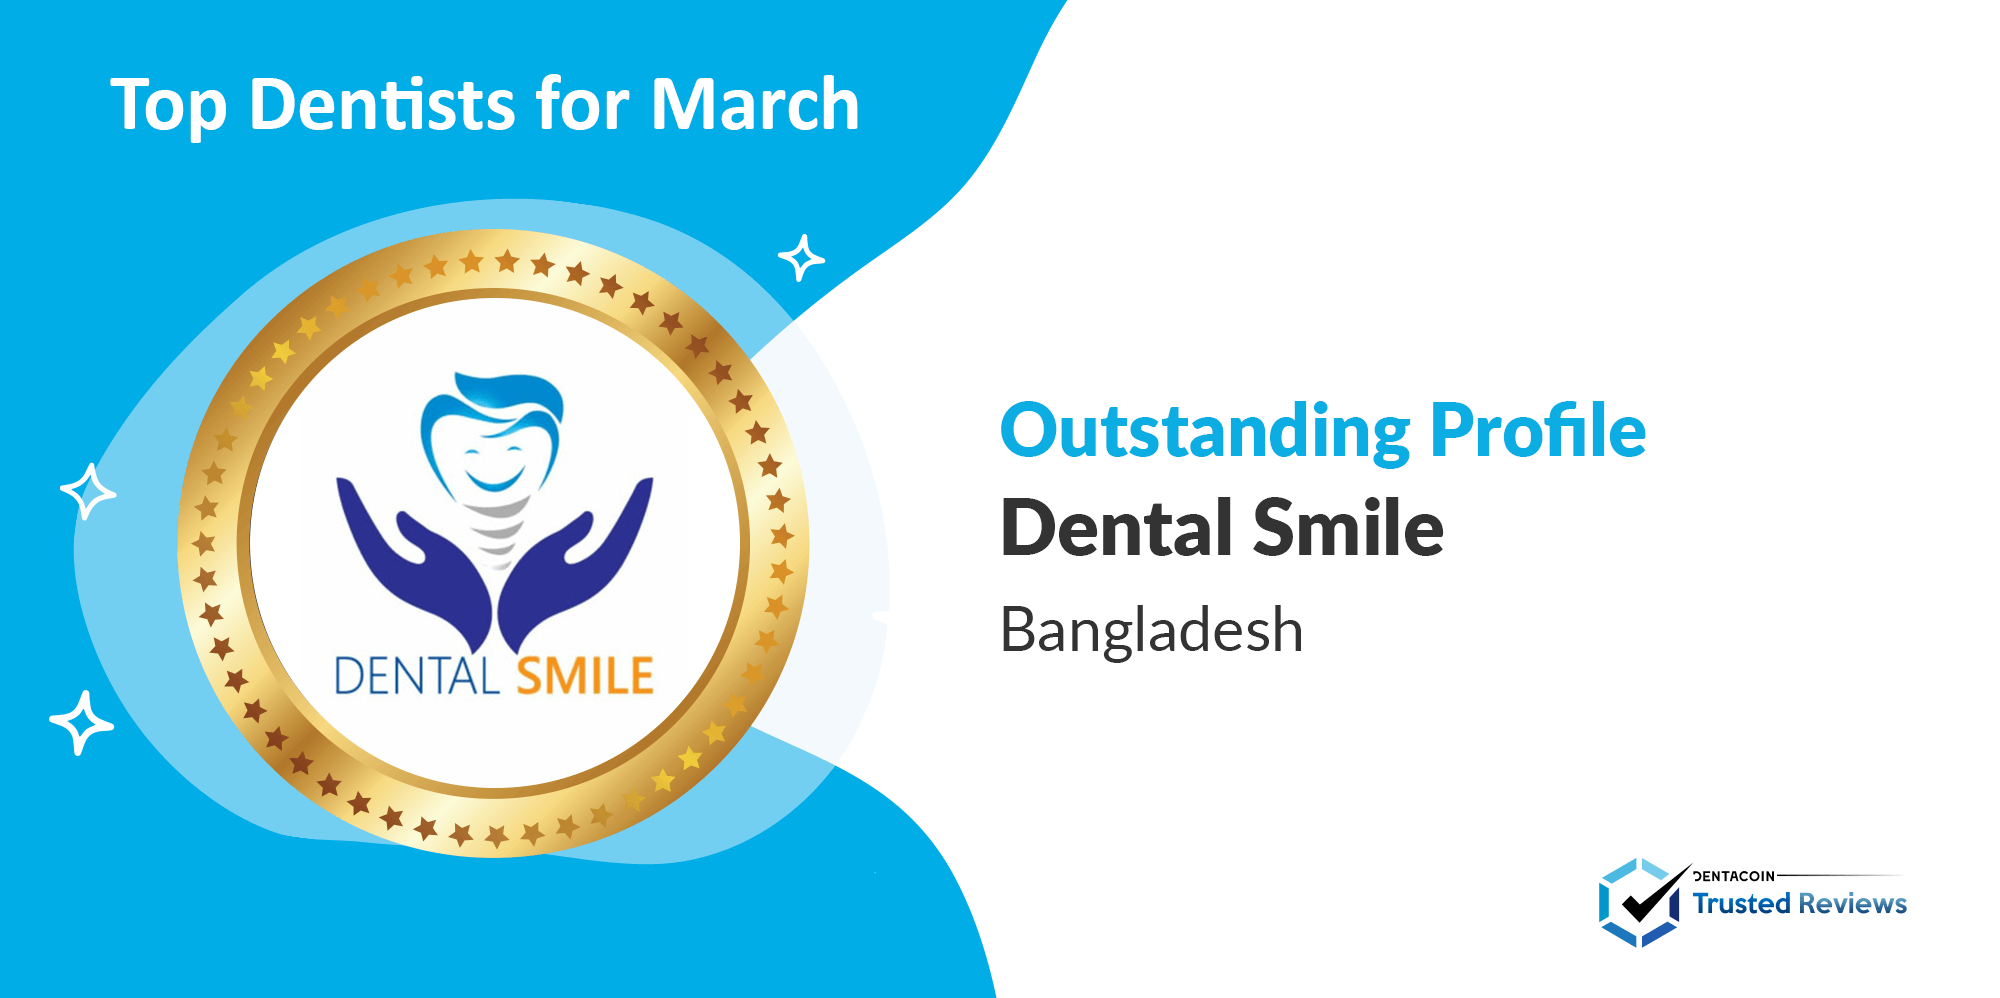 3.March Dentist of the month 2021 Twitter